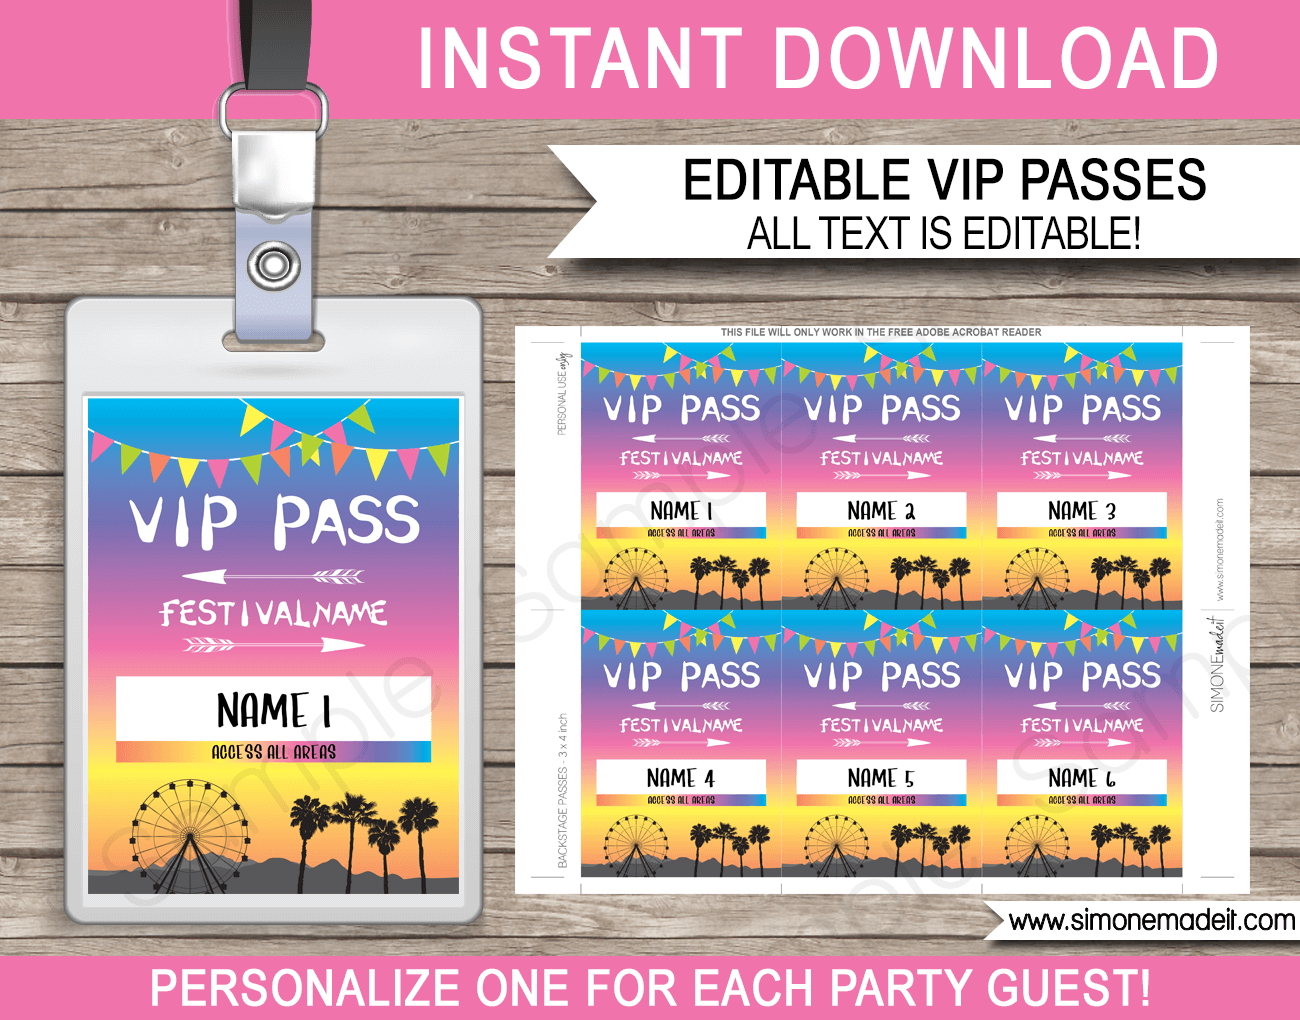 Printable Coachella Party VIP Passes | Festival VIP Pass |  Kidchella, Fauxchella, Coachella Theme | Music Festival, Fete, Gala, Fair, Carnival | Editable & Printable Template | Instant Download via simonemadeit.com